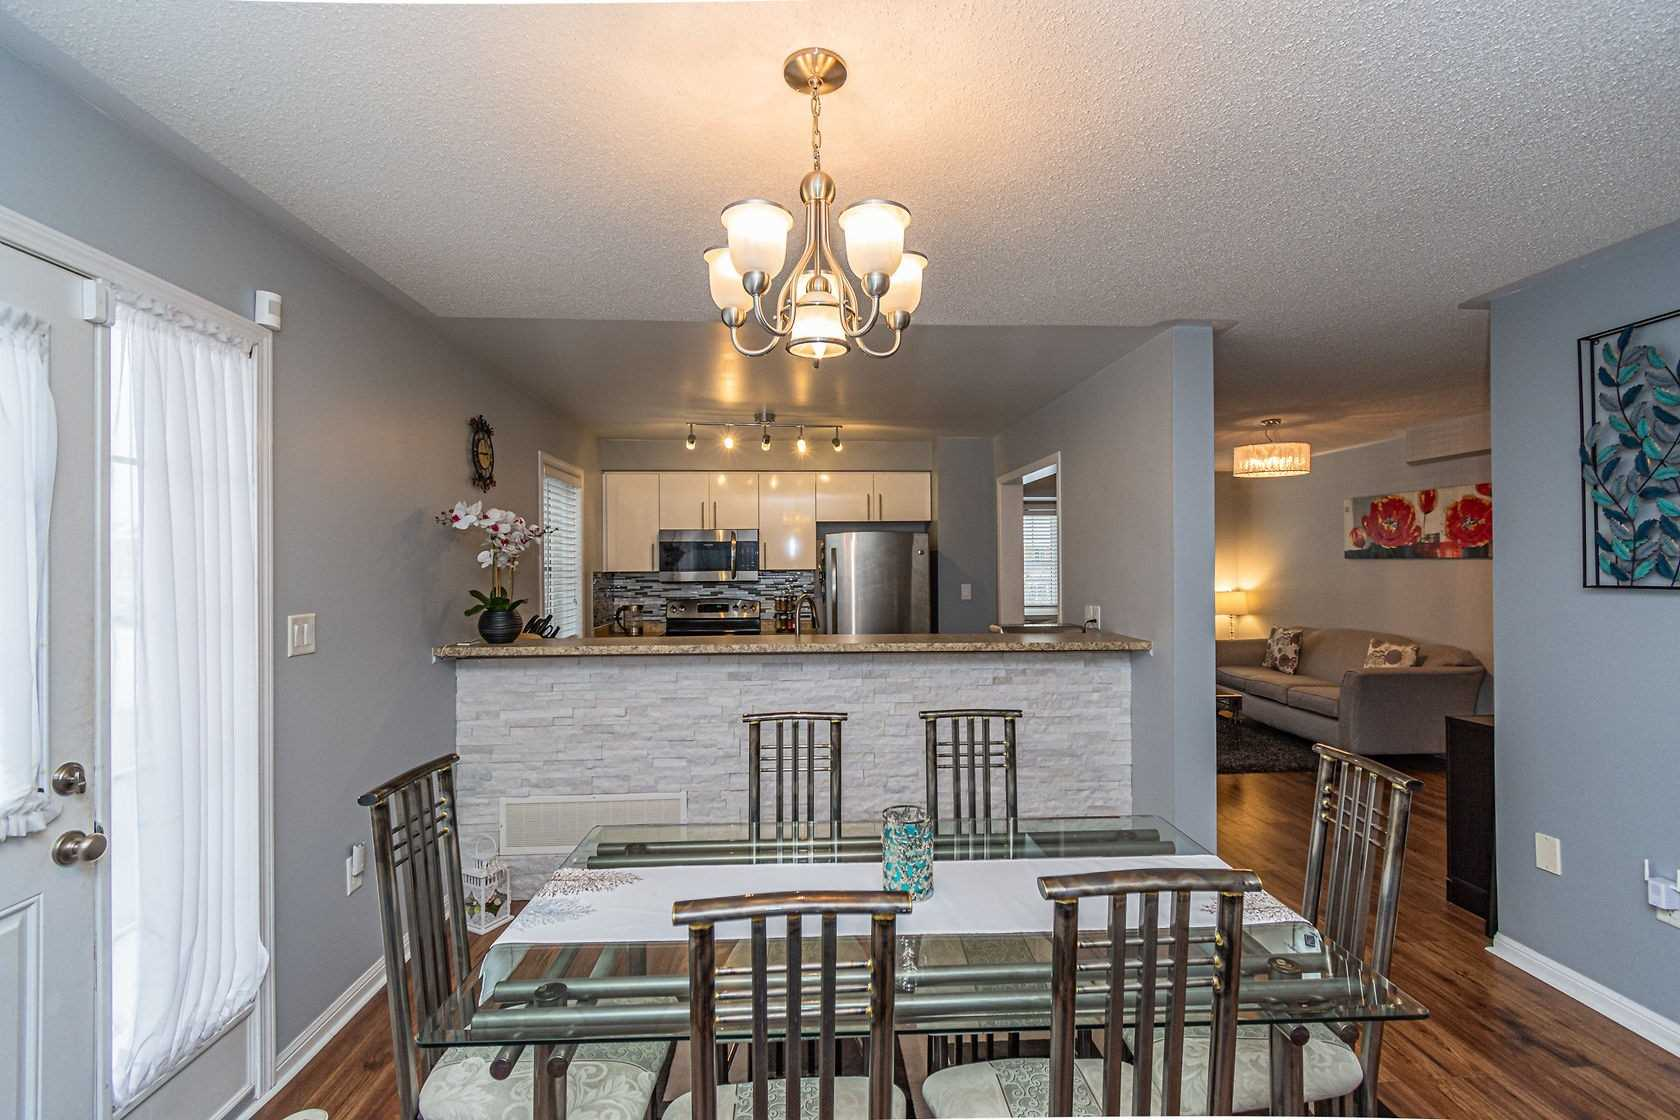 Image 3 of 20 showing inside of 3 Bedroom Att/Row/Twnhouse 3-Storey house for sale at 912 Ambroise Cres, Milton L9T0M2